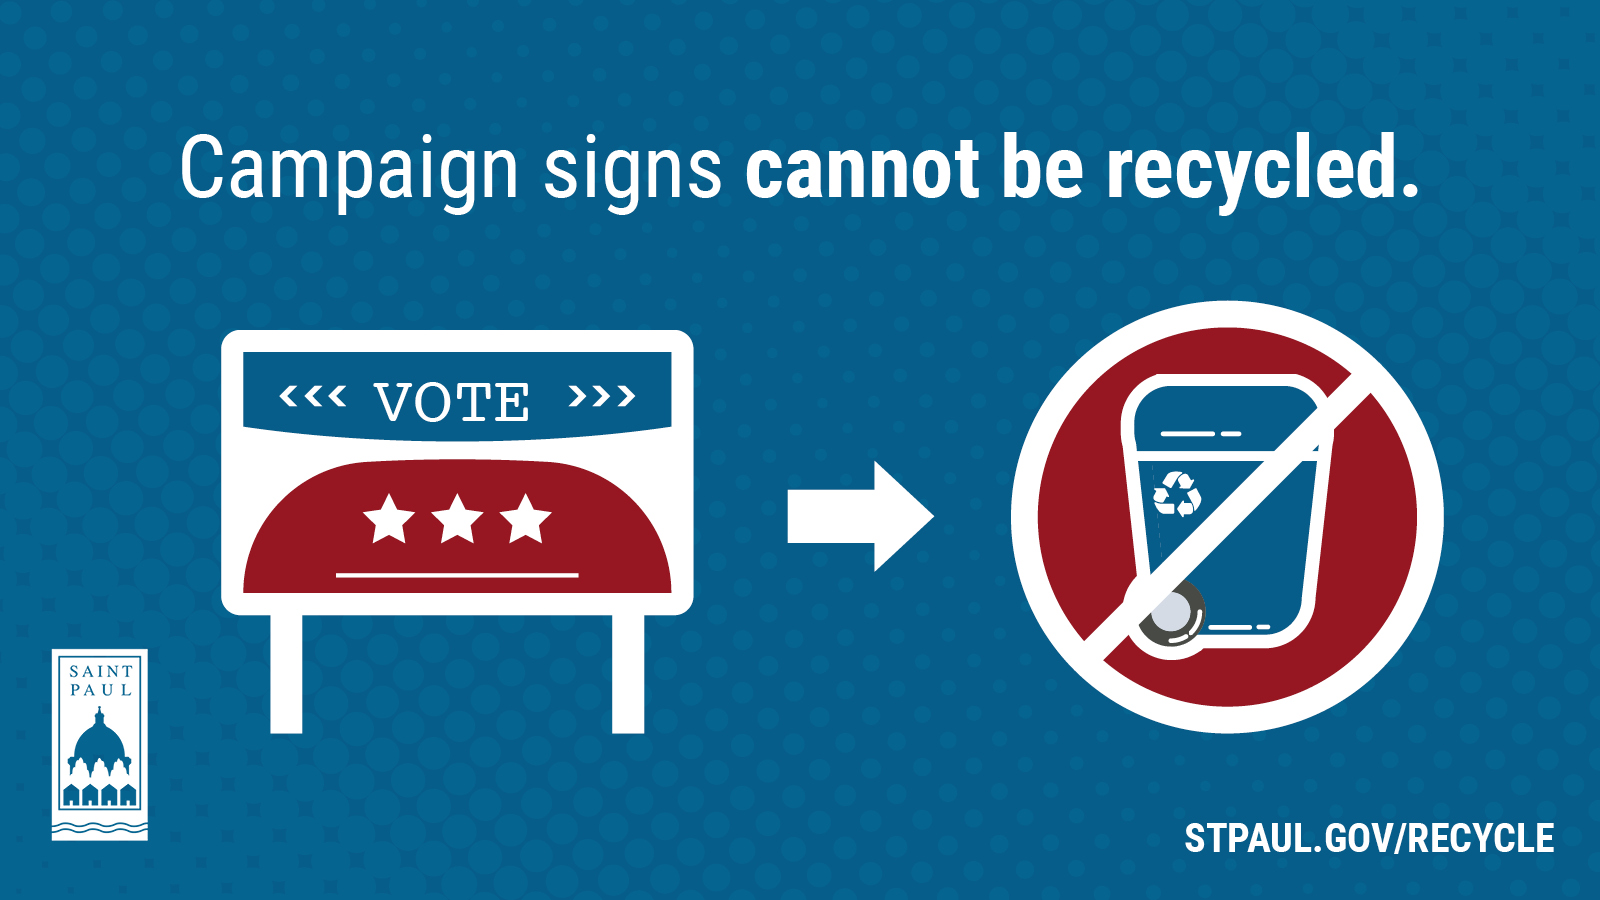 Graphics indicating not to put plastic lawn signs in the recycling container